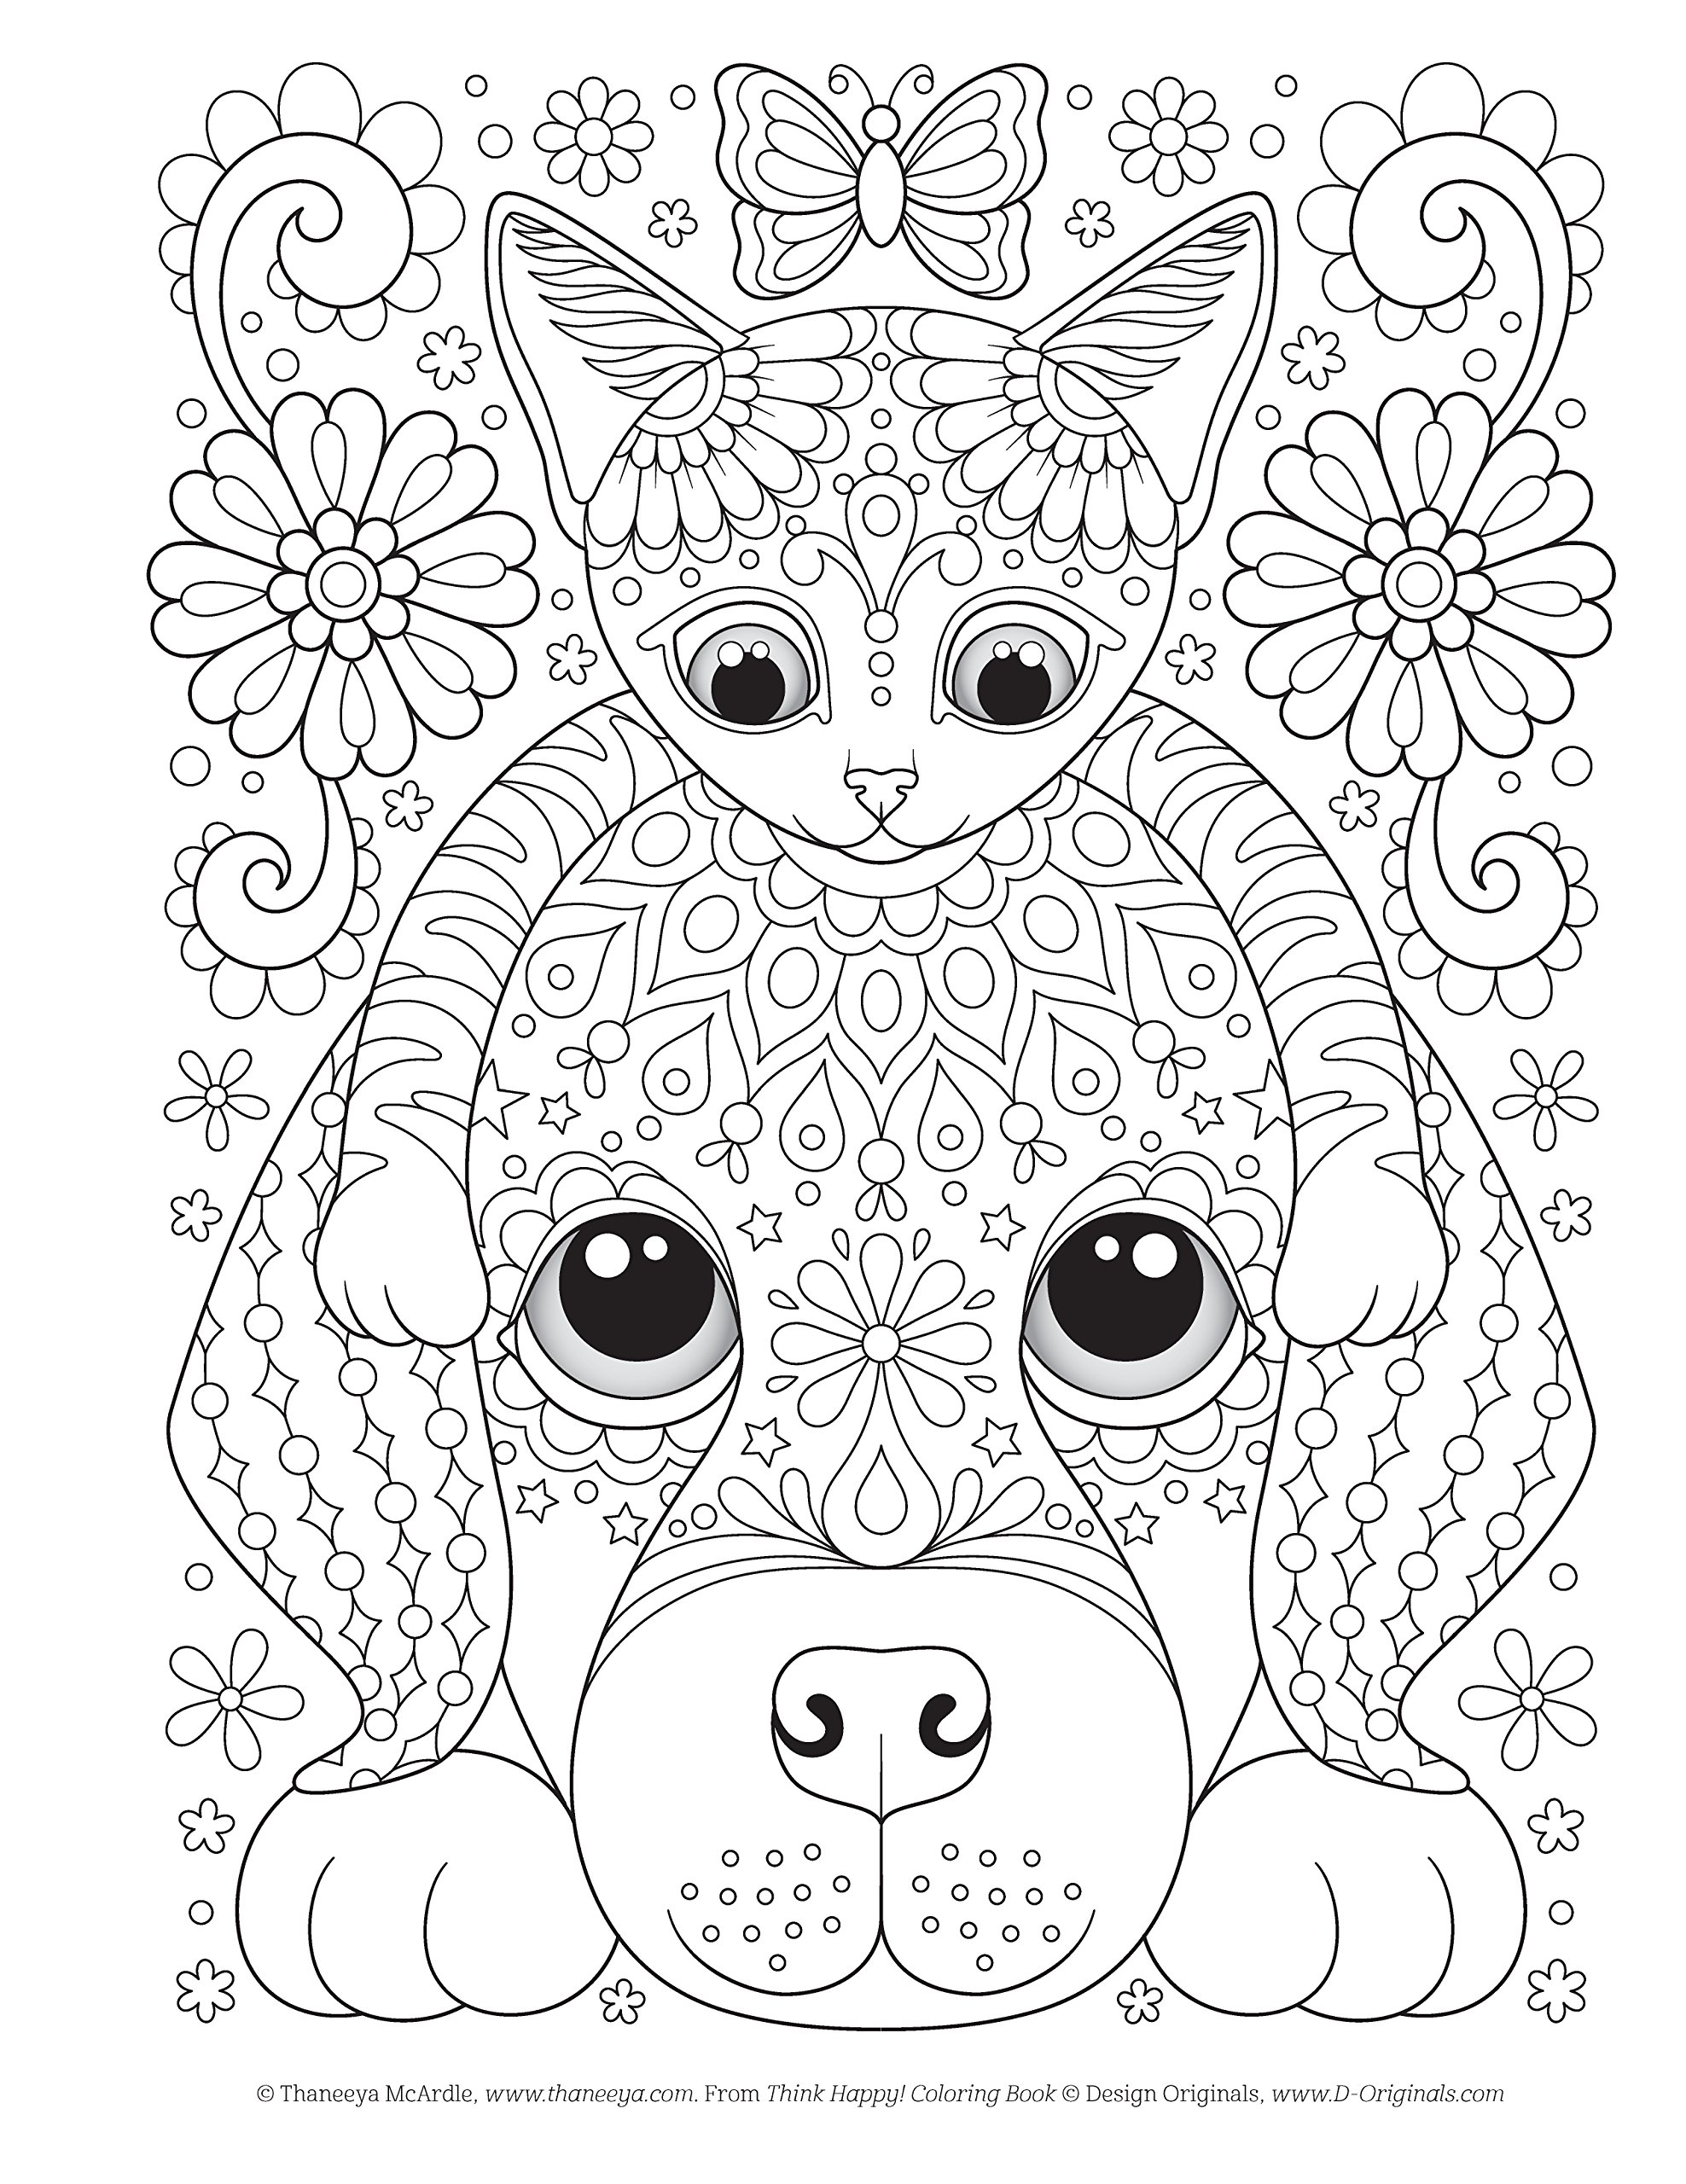 Groovy Heart Coloring Page from Thaneeya McArdle's Power of Love ... | 2560x1976